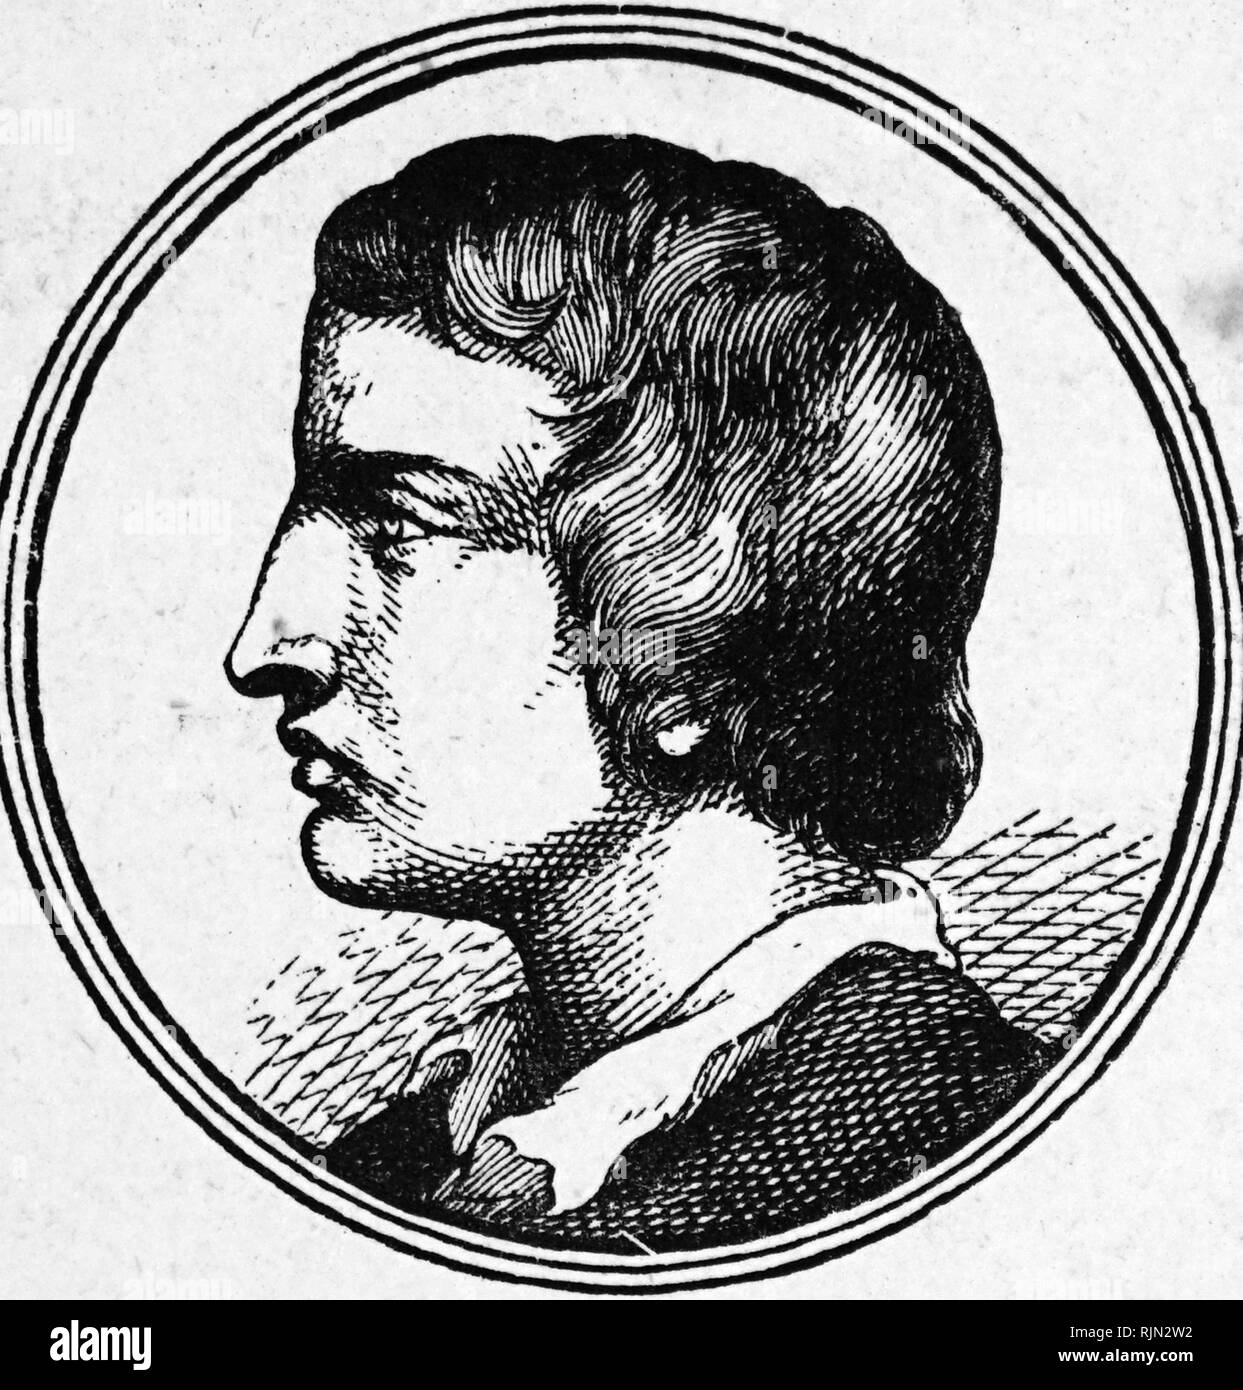 Illustration showing William Collins (1721 - 1759); English poet. Second in influence only to Thomas Gray, he was an important poet of the middle decades of the 18th century. - Stock Image